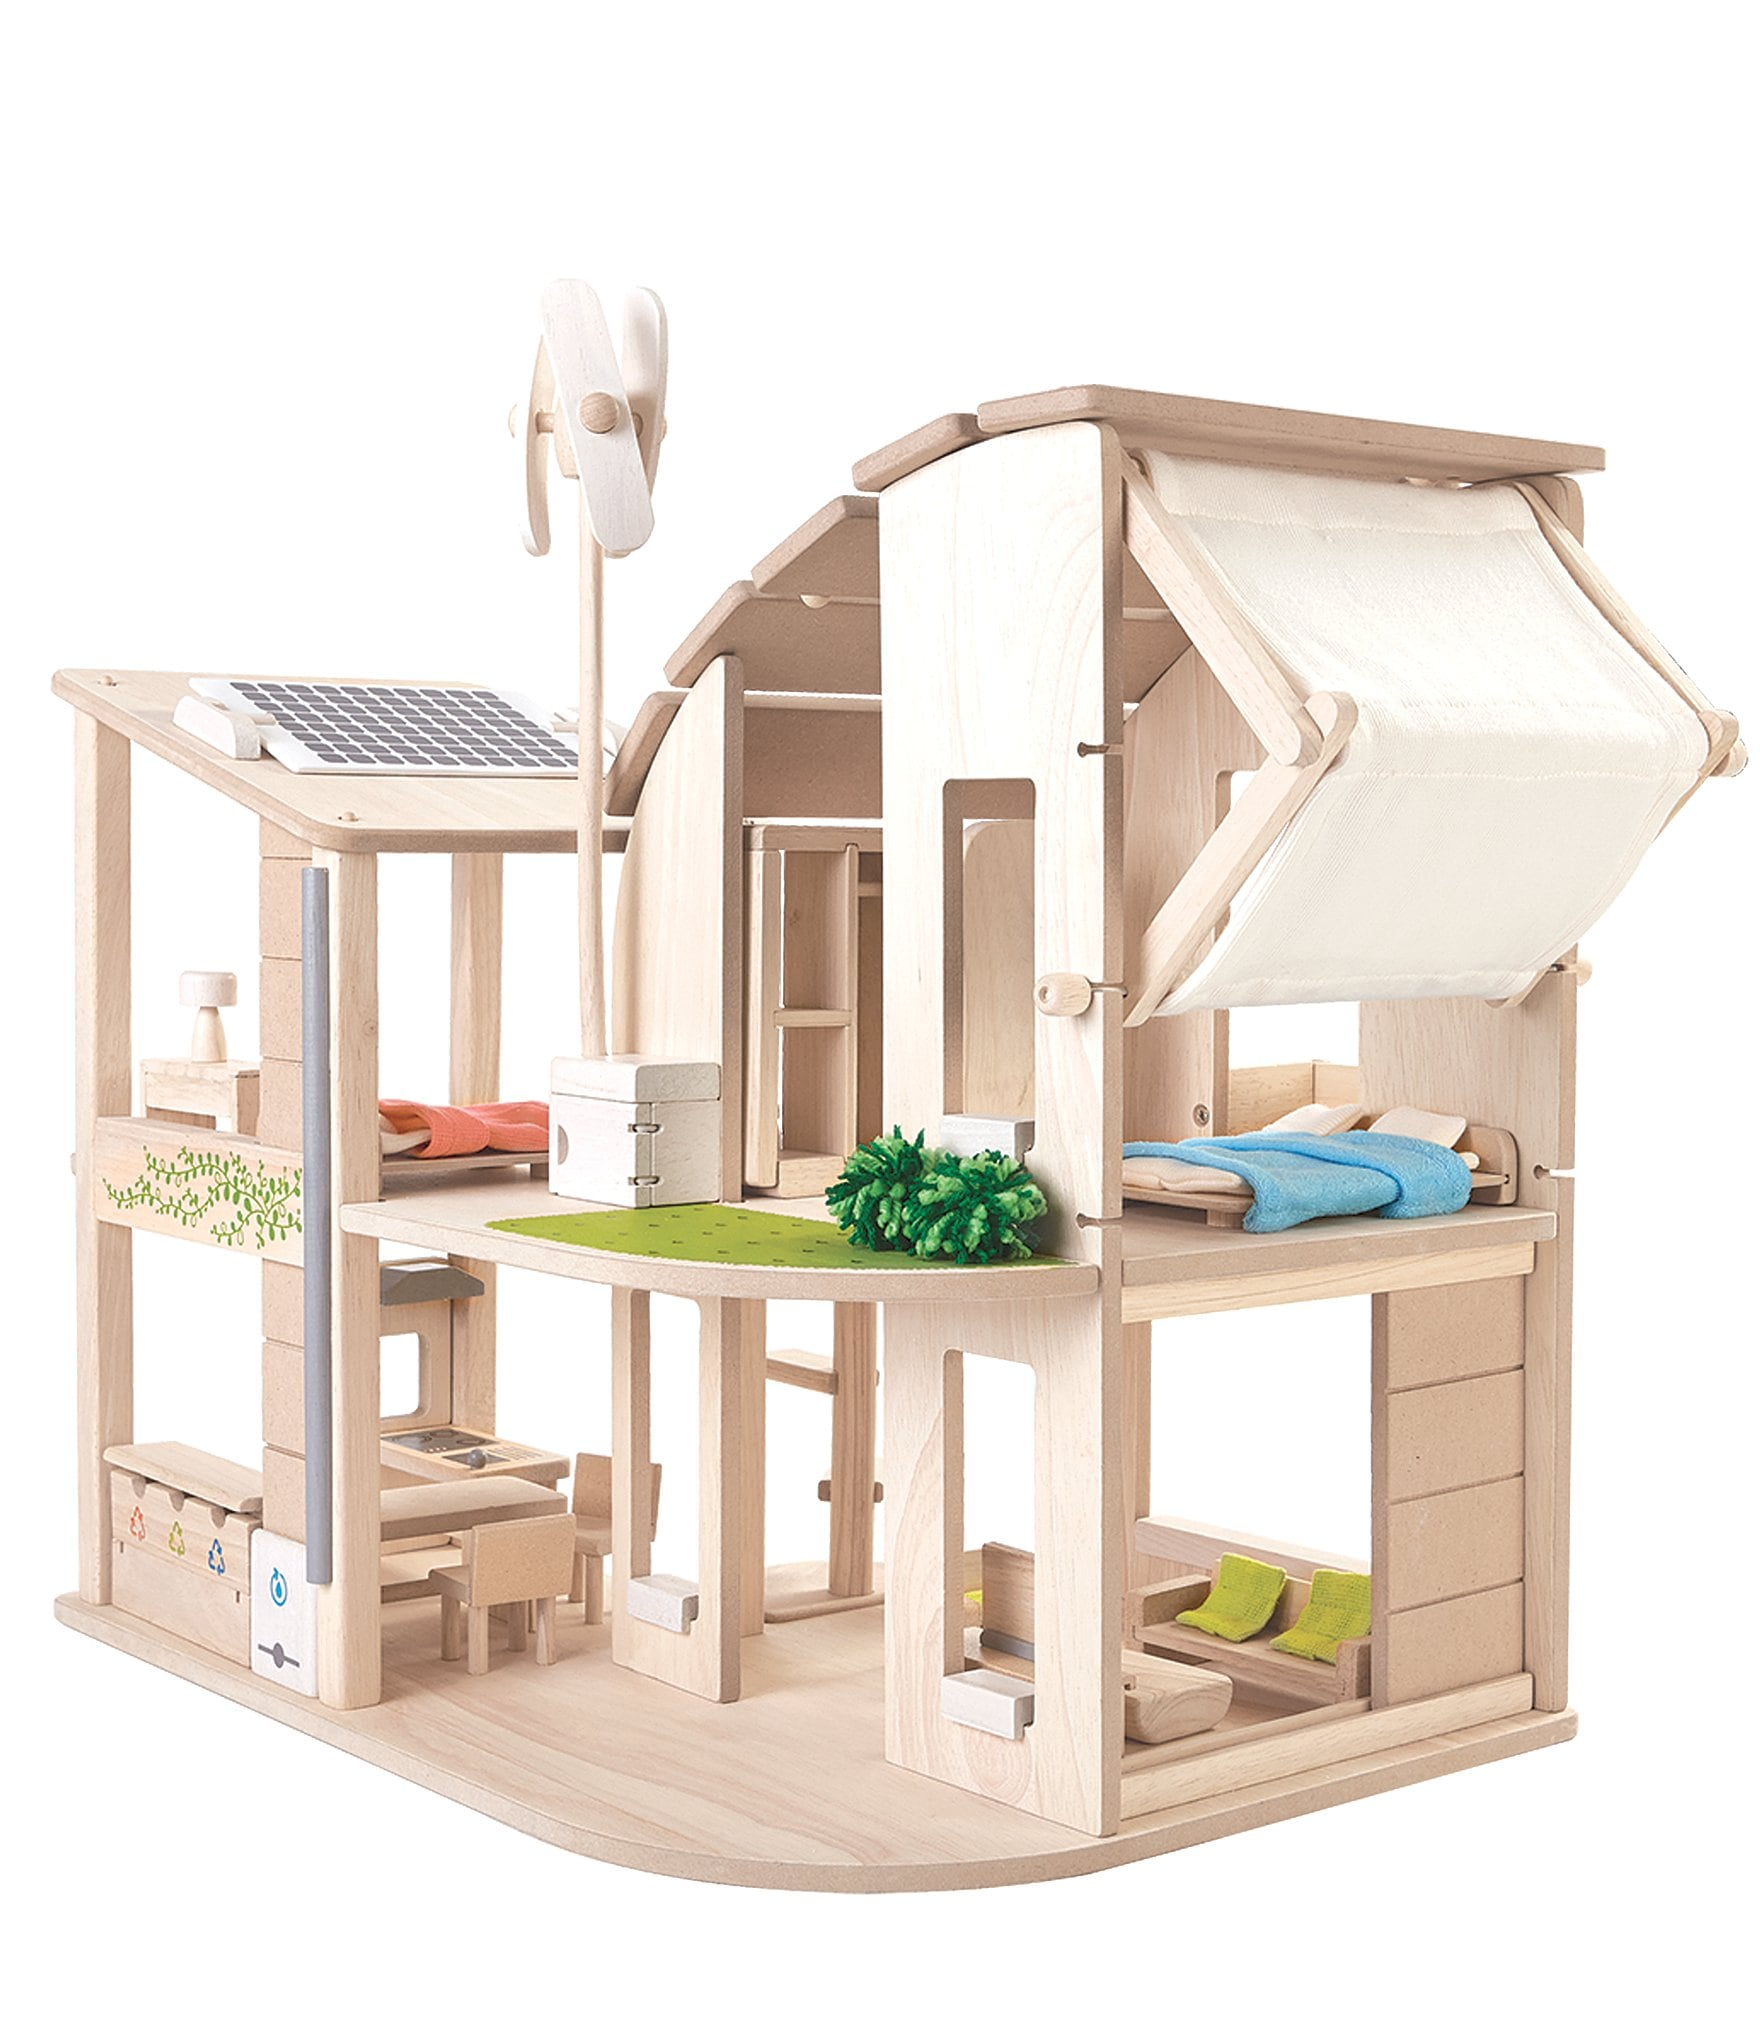 Dillards Furniture Brands: Plan Toys Green Dollhouse With Furniture